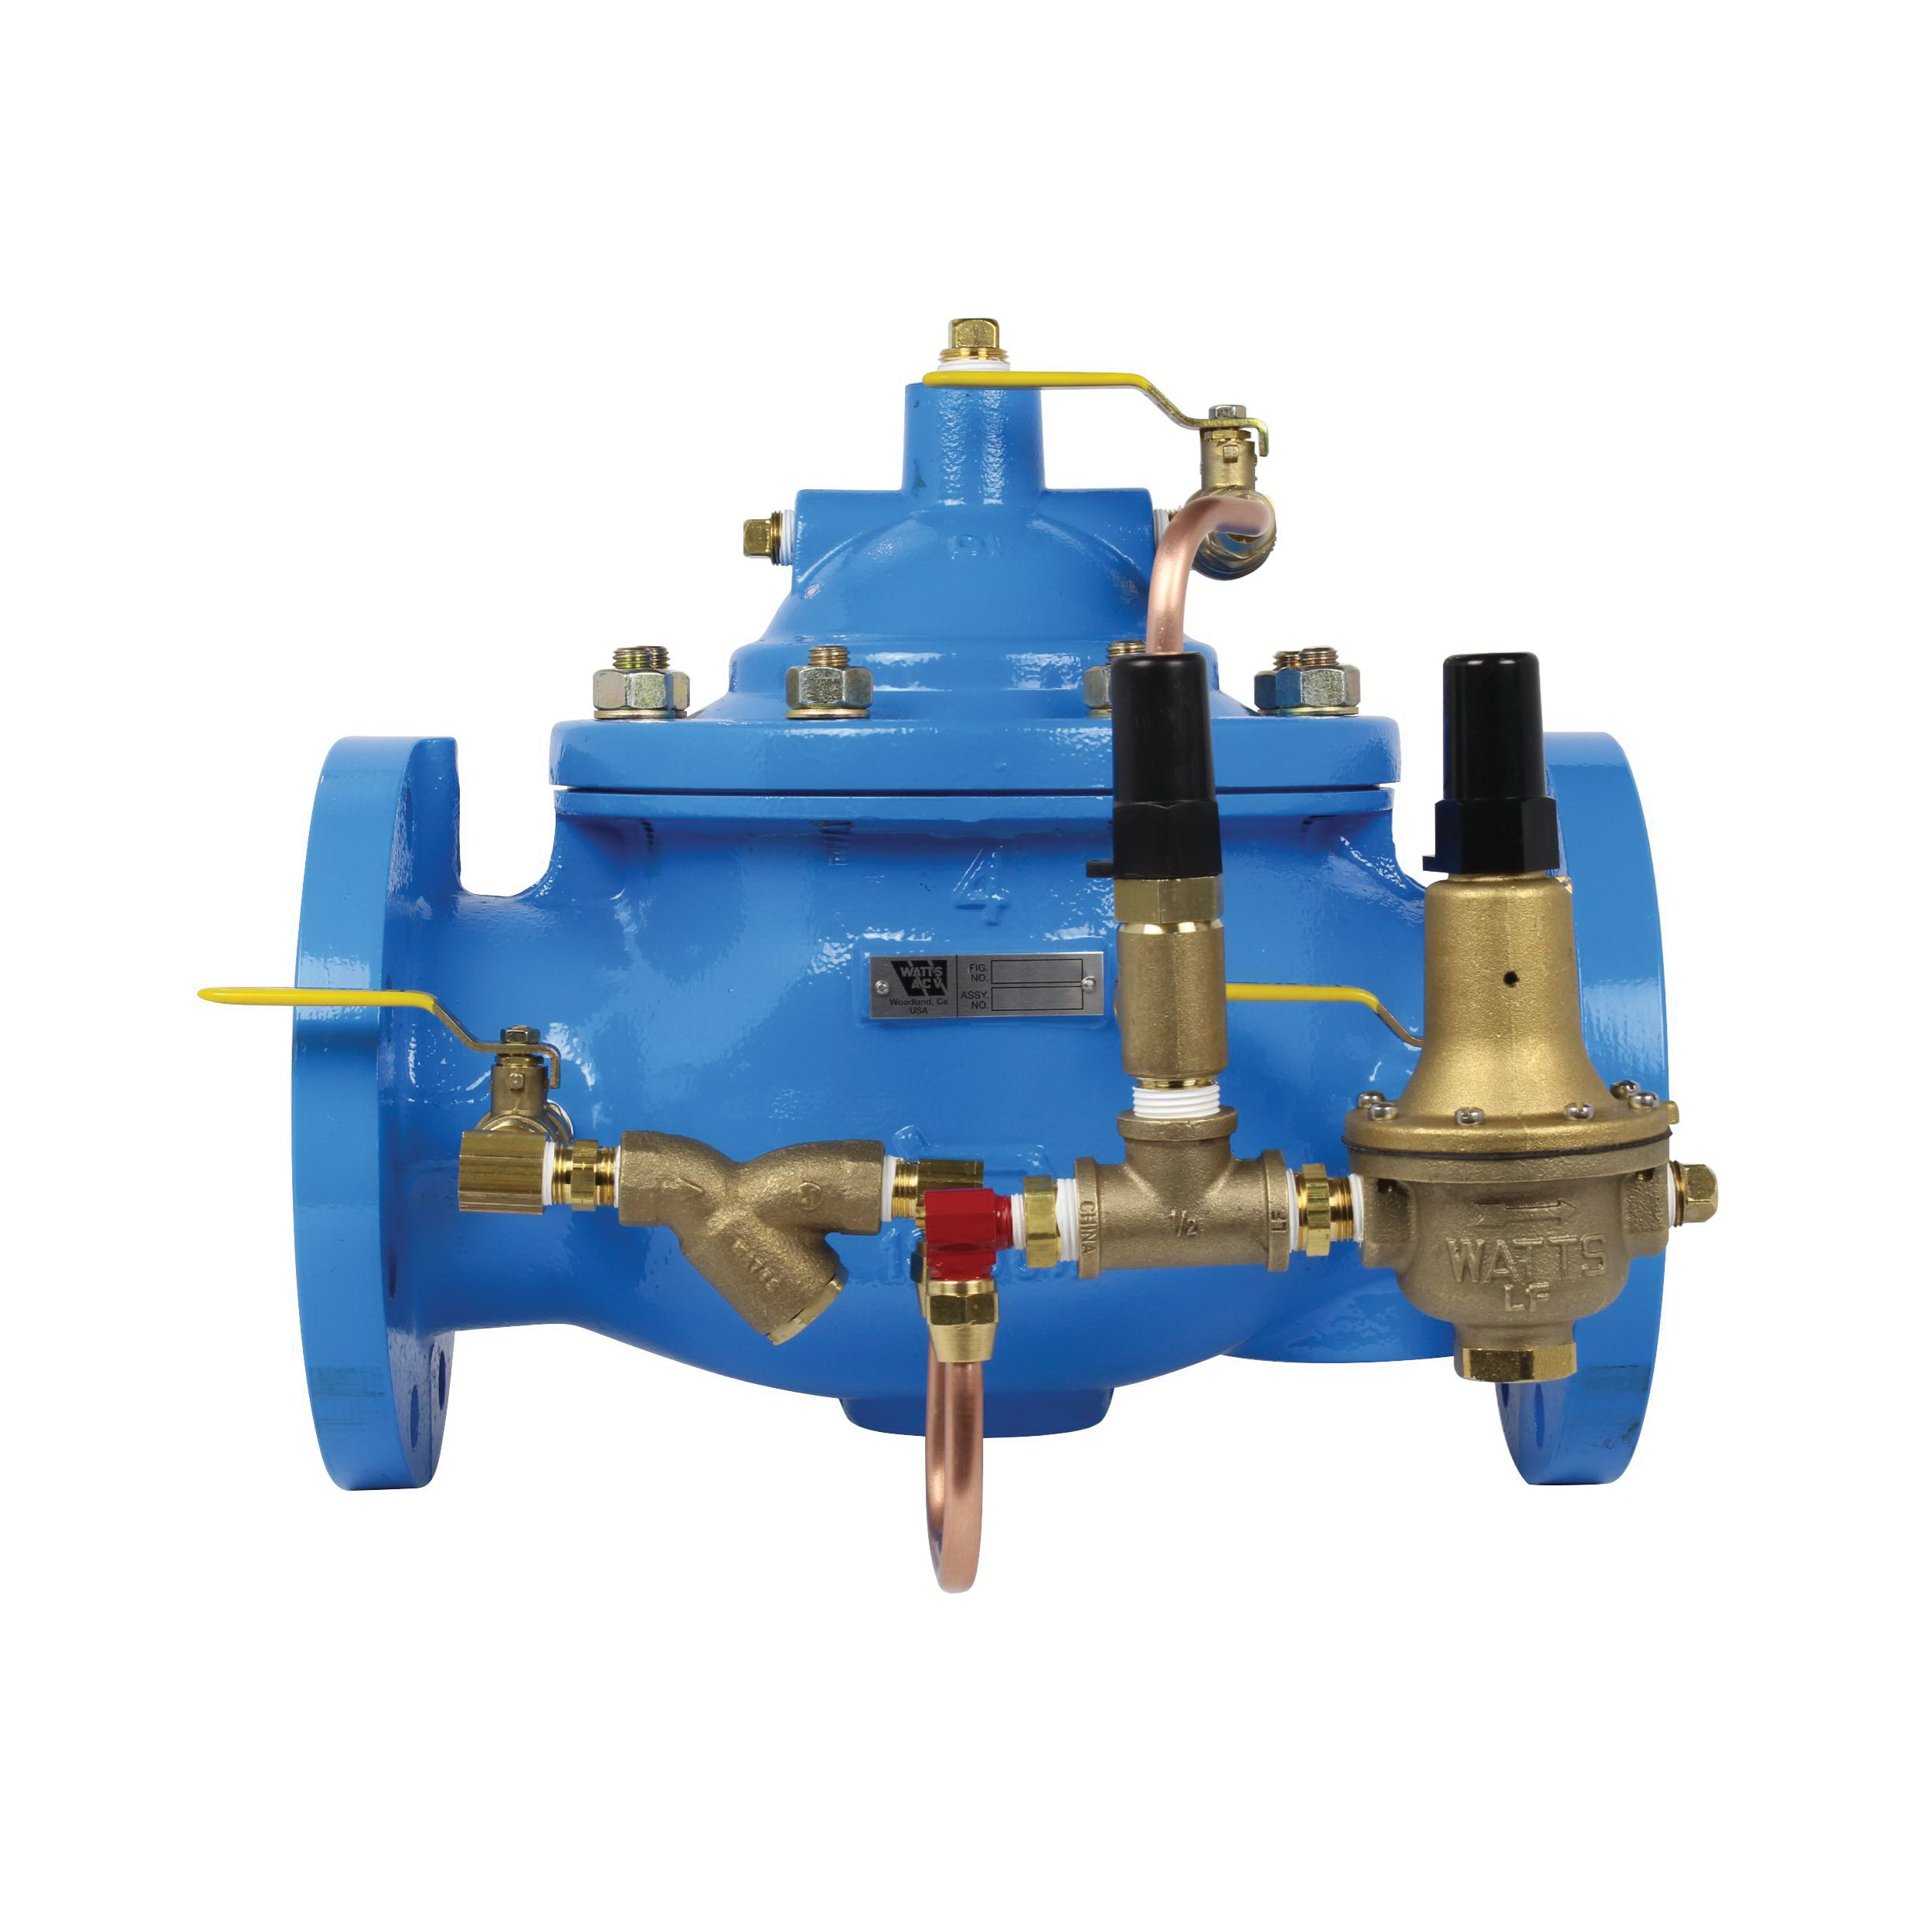 WATTS® V2016-04 LFF115 Pressure Reducing Globe Valve, 4 in, Flange, 250 psi, 50 to 800 gpm, Ductile Iron Body